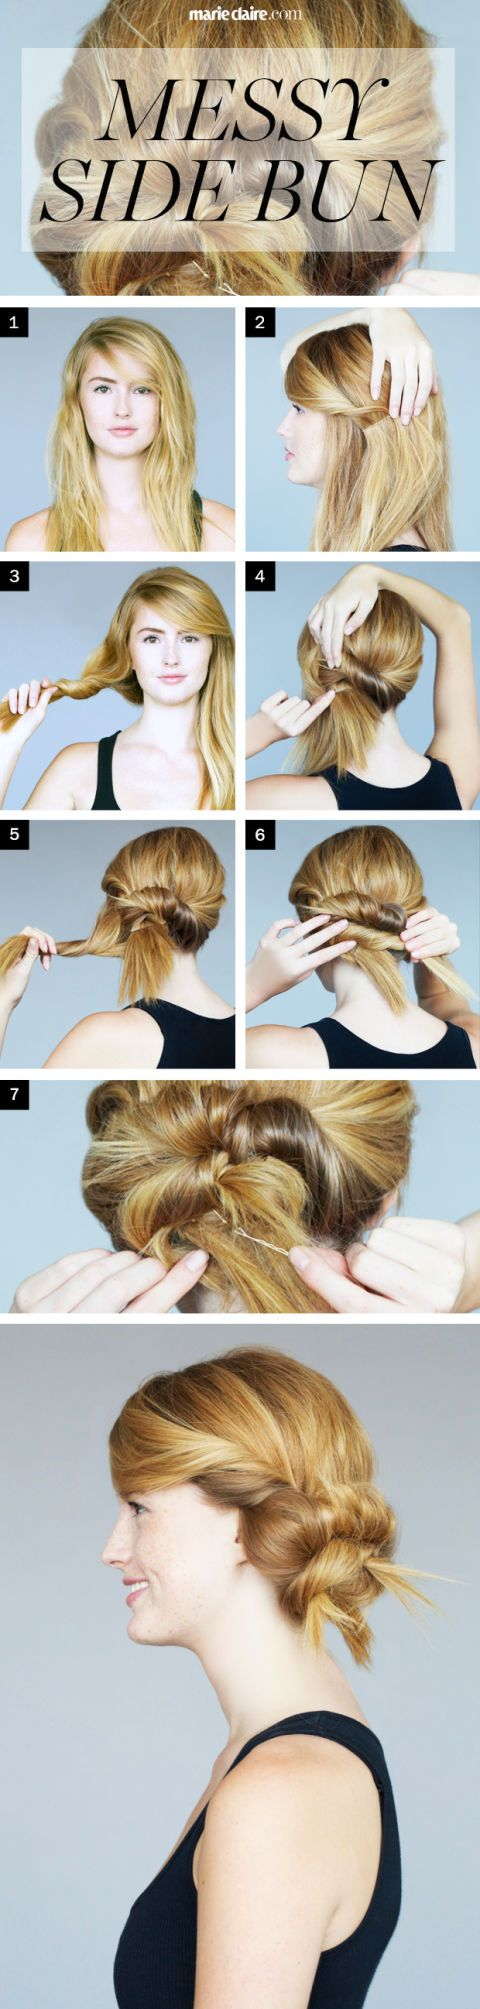 Hair How-To: Messy Side Bun with a Twist